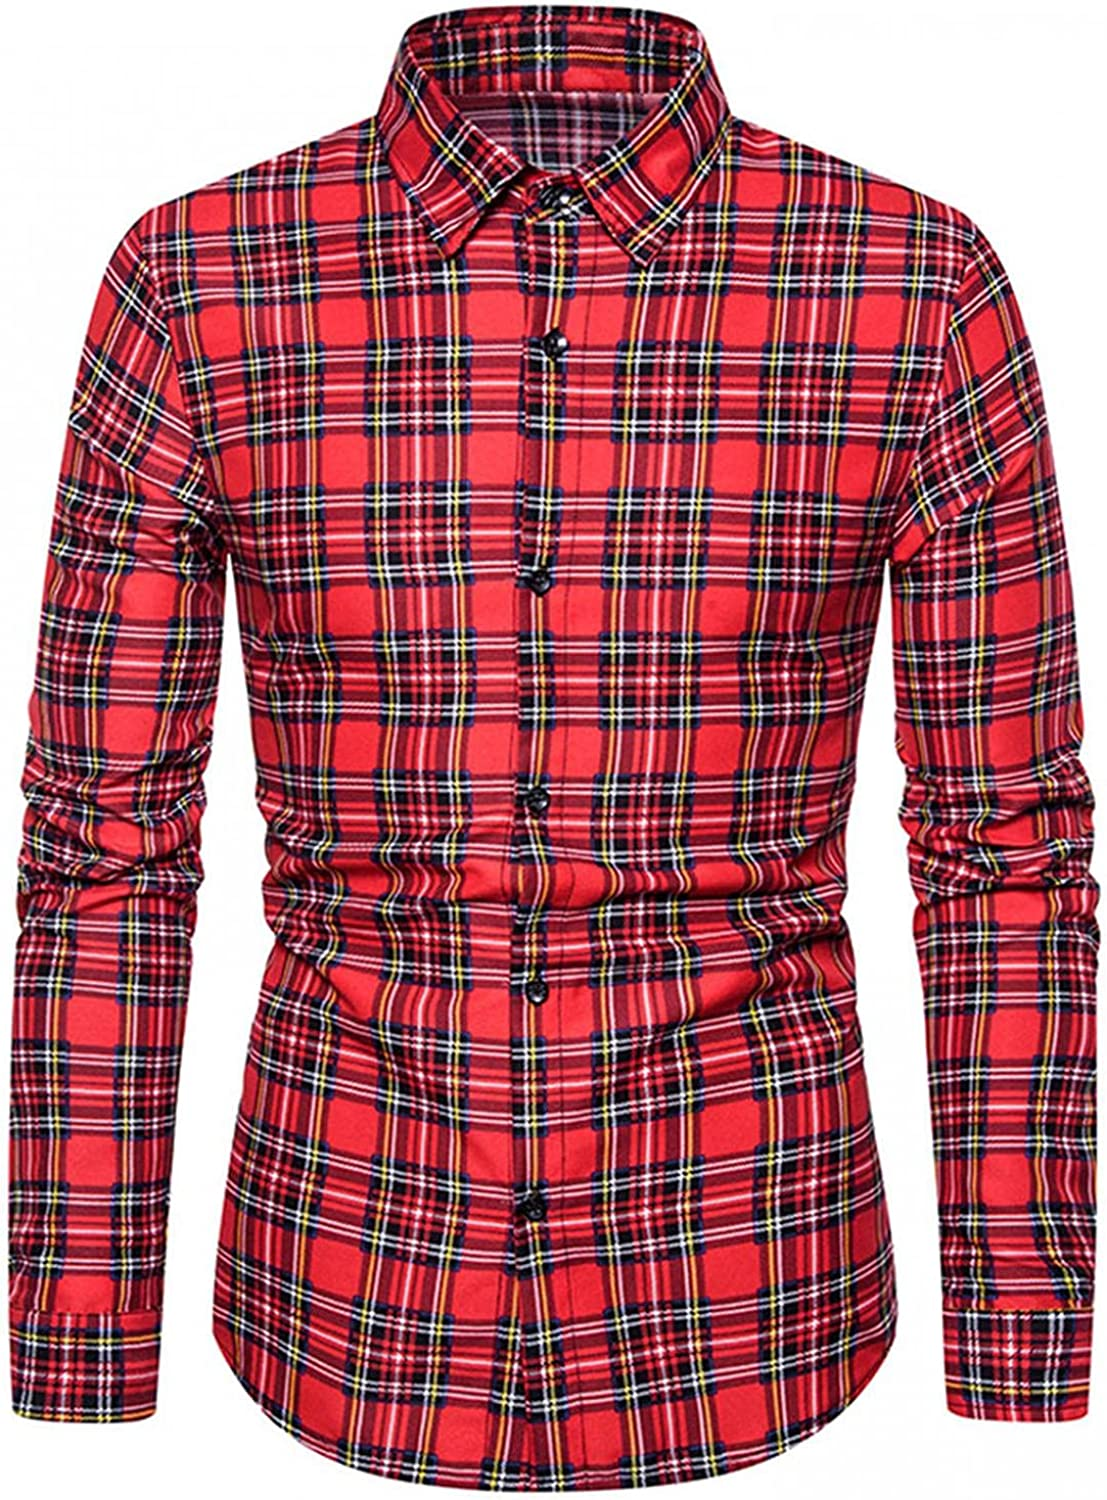 HGOOGY Men's Long Sleeve Casual Shirt Fall Plaid Printed Button Down Pocket Tops Lightweight Slim Fit Blouse